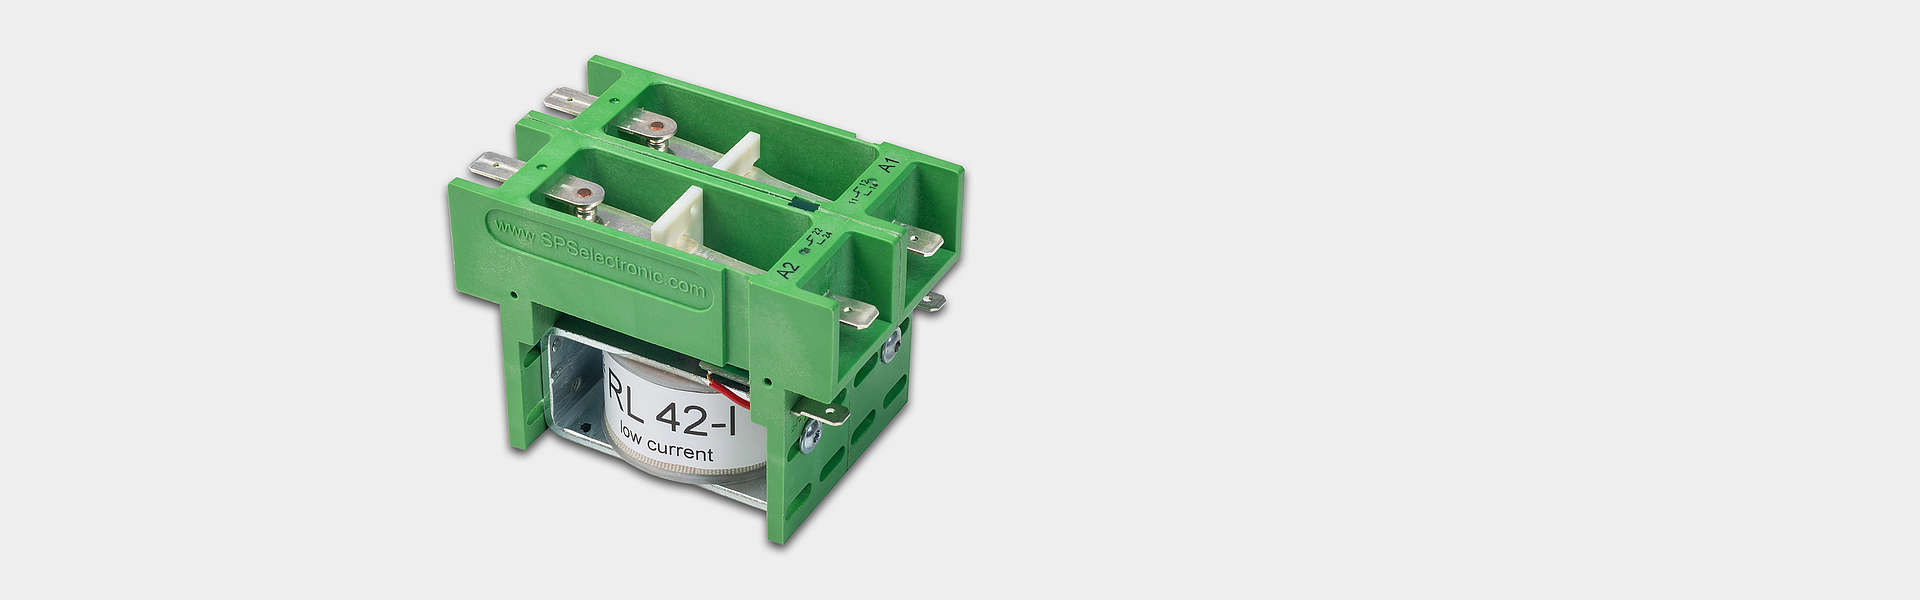 High Voltage Relay up to 5,000 V DC RL 42-l   SPS electronic